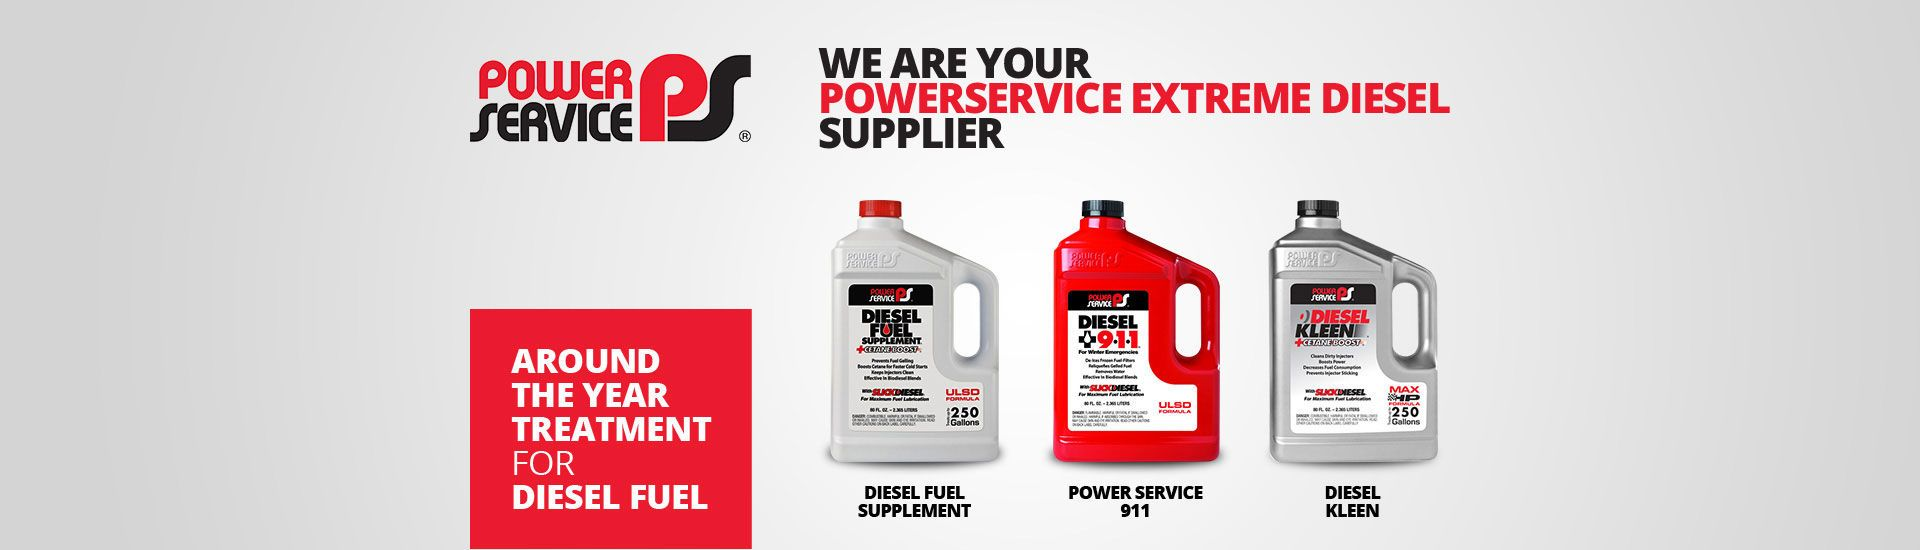 Yoder Oil - Distributor of Bulk Fuels and Lubricants in Indiana